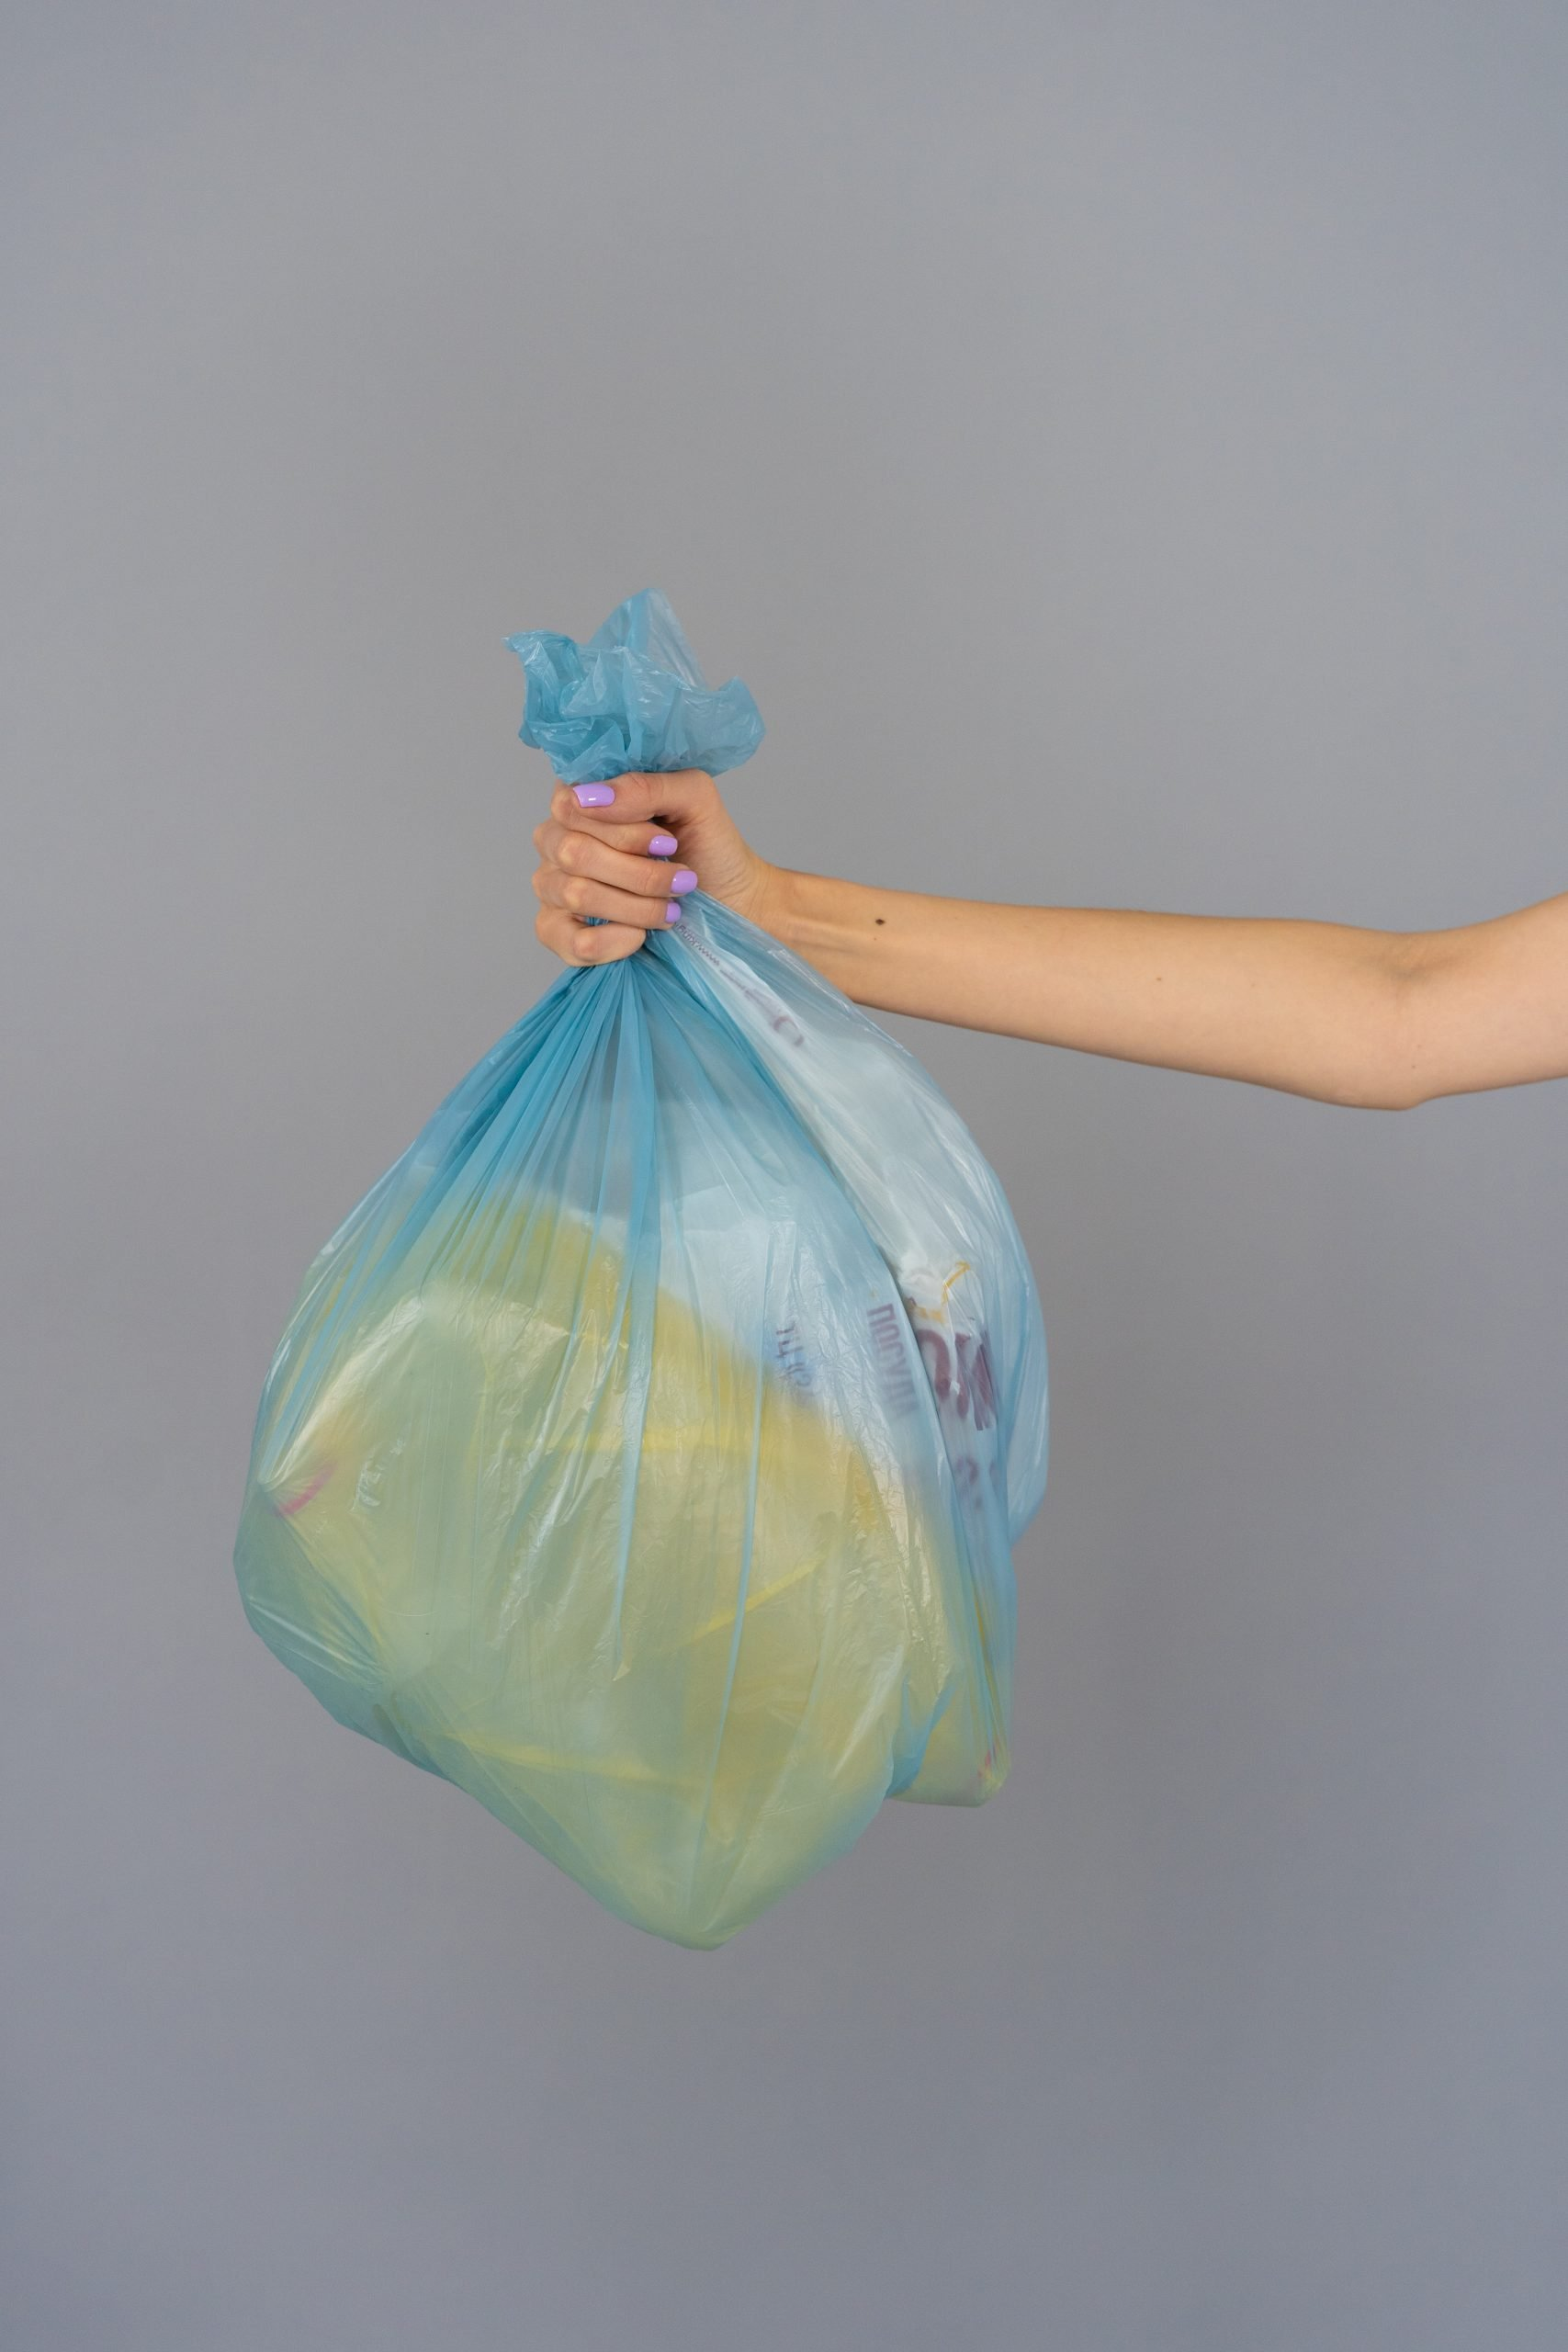 outstretched arm with hand holding a blue bag of trash.